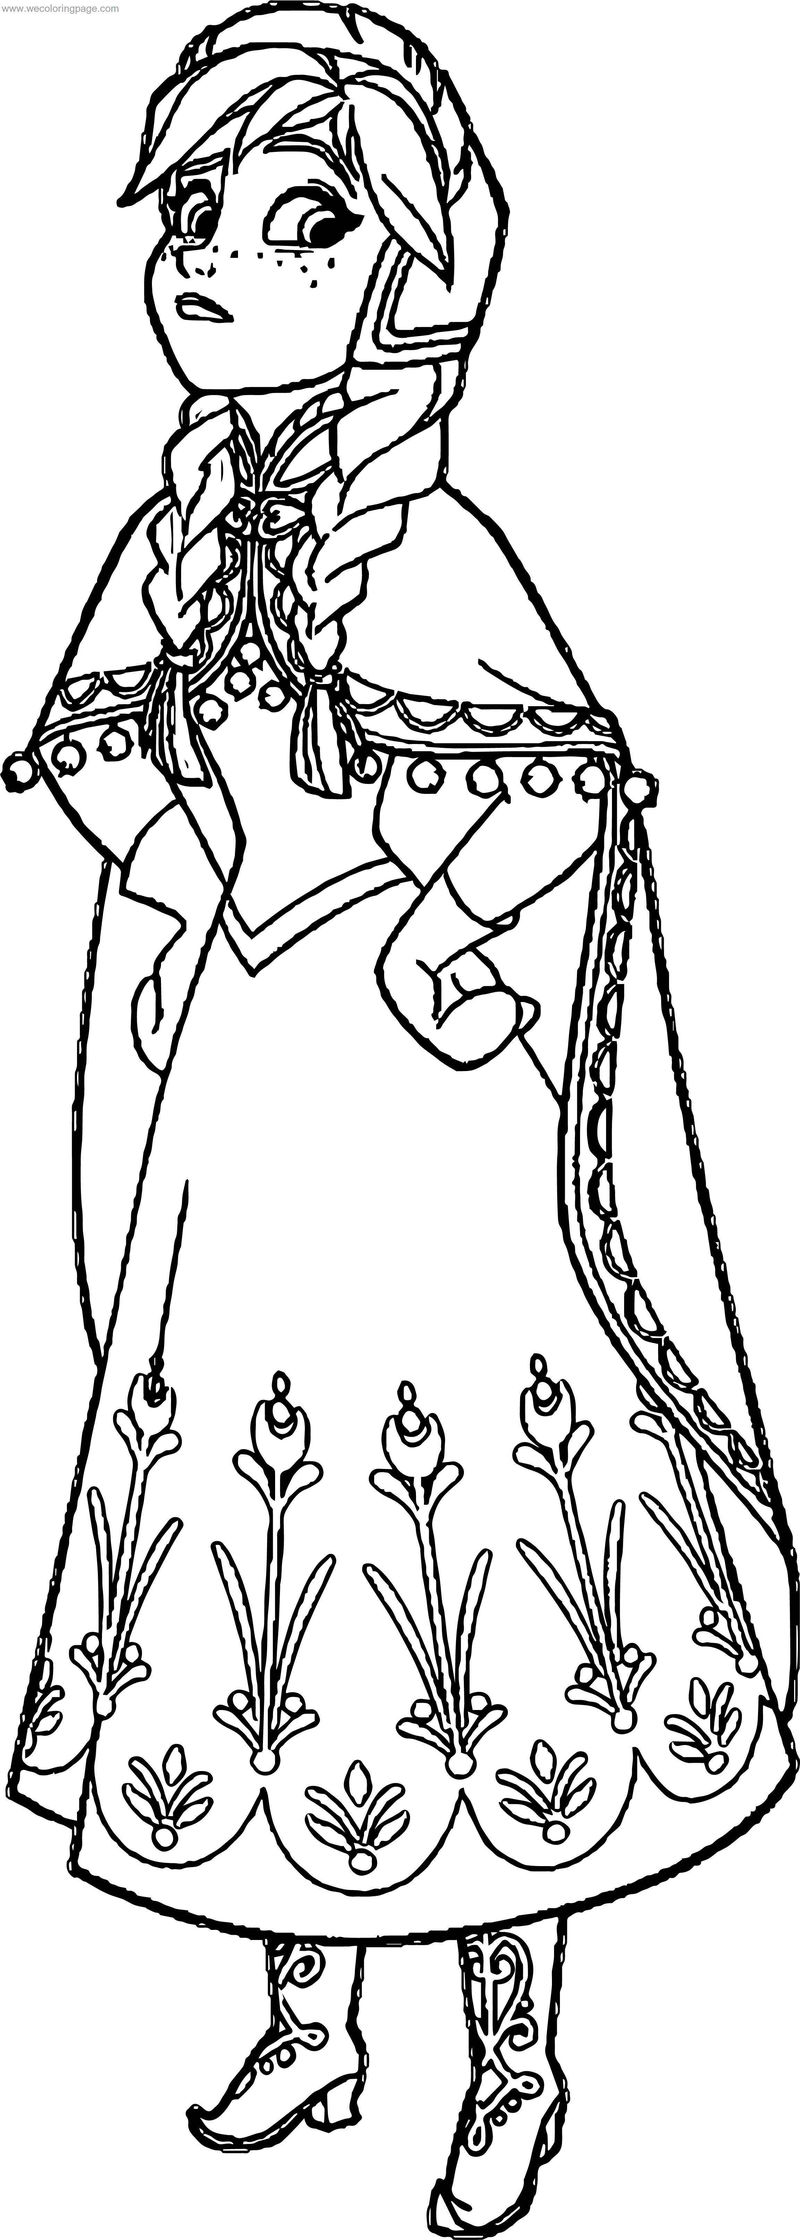 Frozen Anna Coloring Page - Coloring Sheets